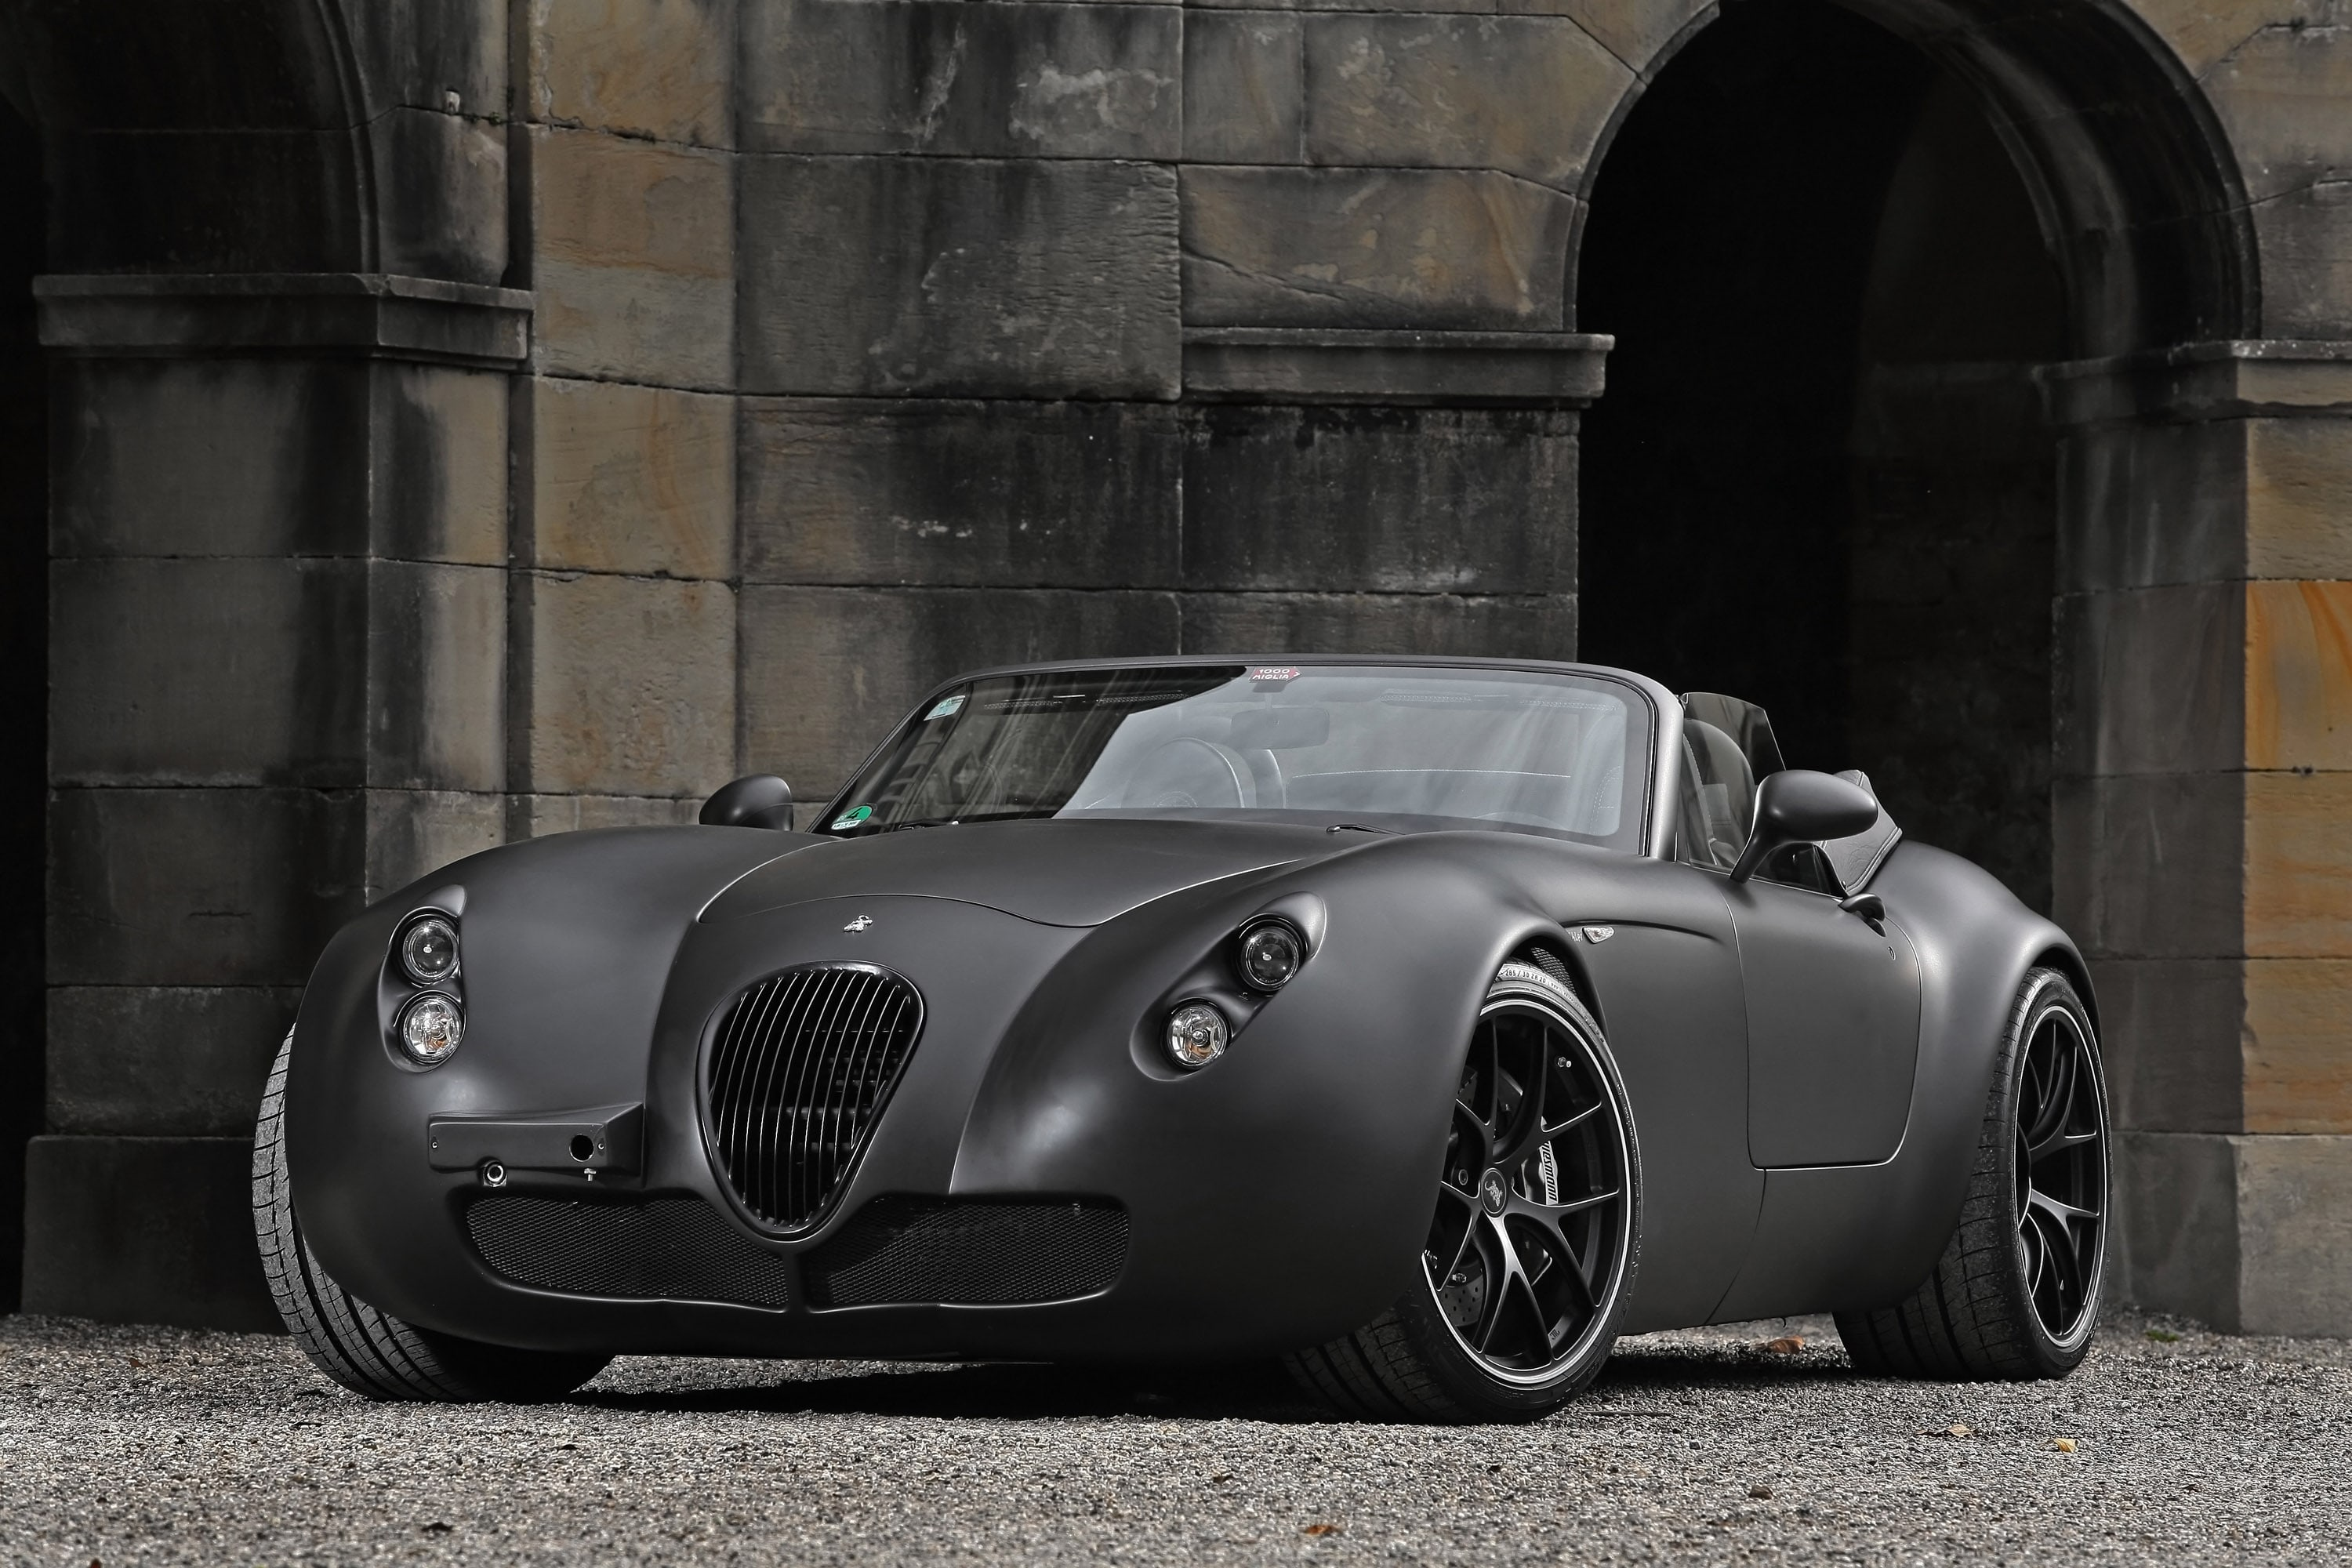 Wiesmann Wallpapers hd